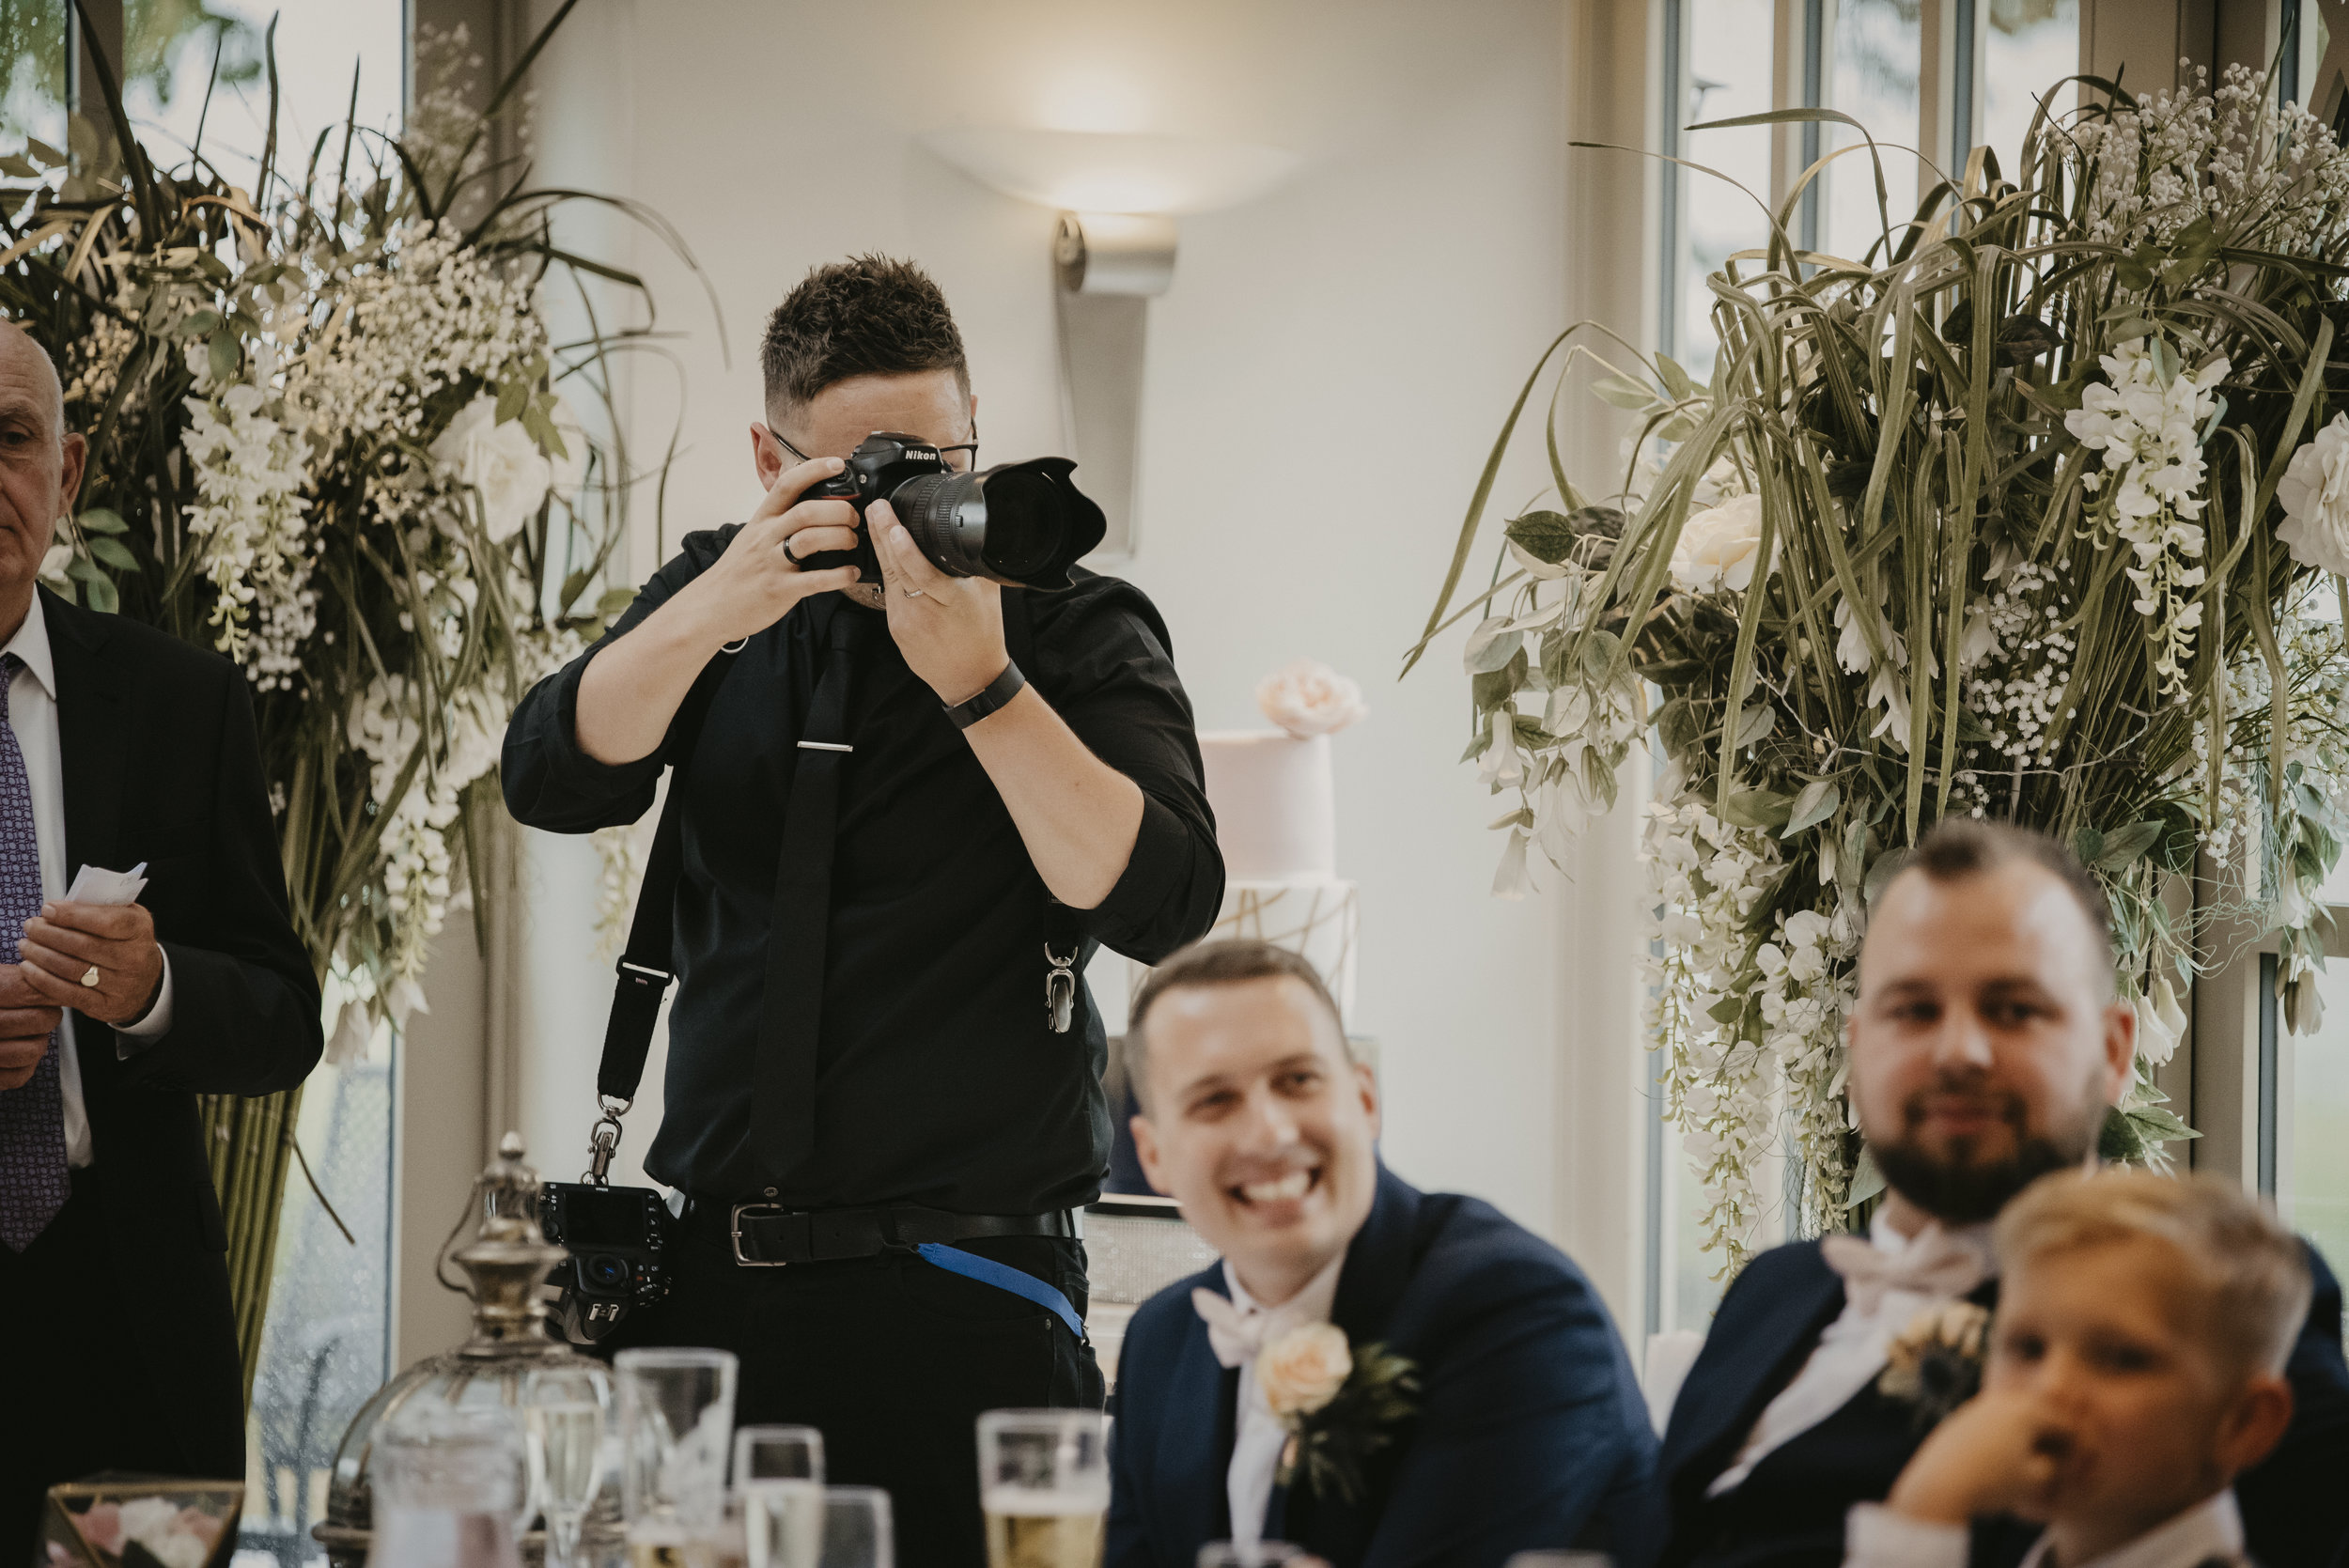 Jamie Ricketts - AT A WEDDING - 2018 - TAKEN BY WHITE APPLE PHOTOGRAPHY...